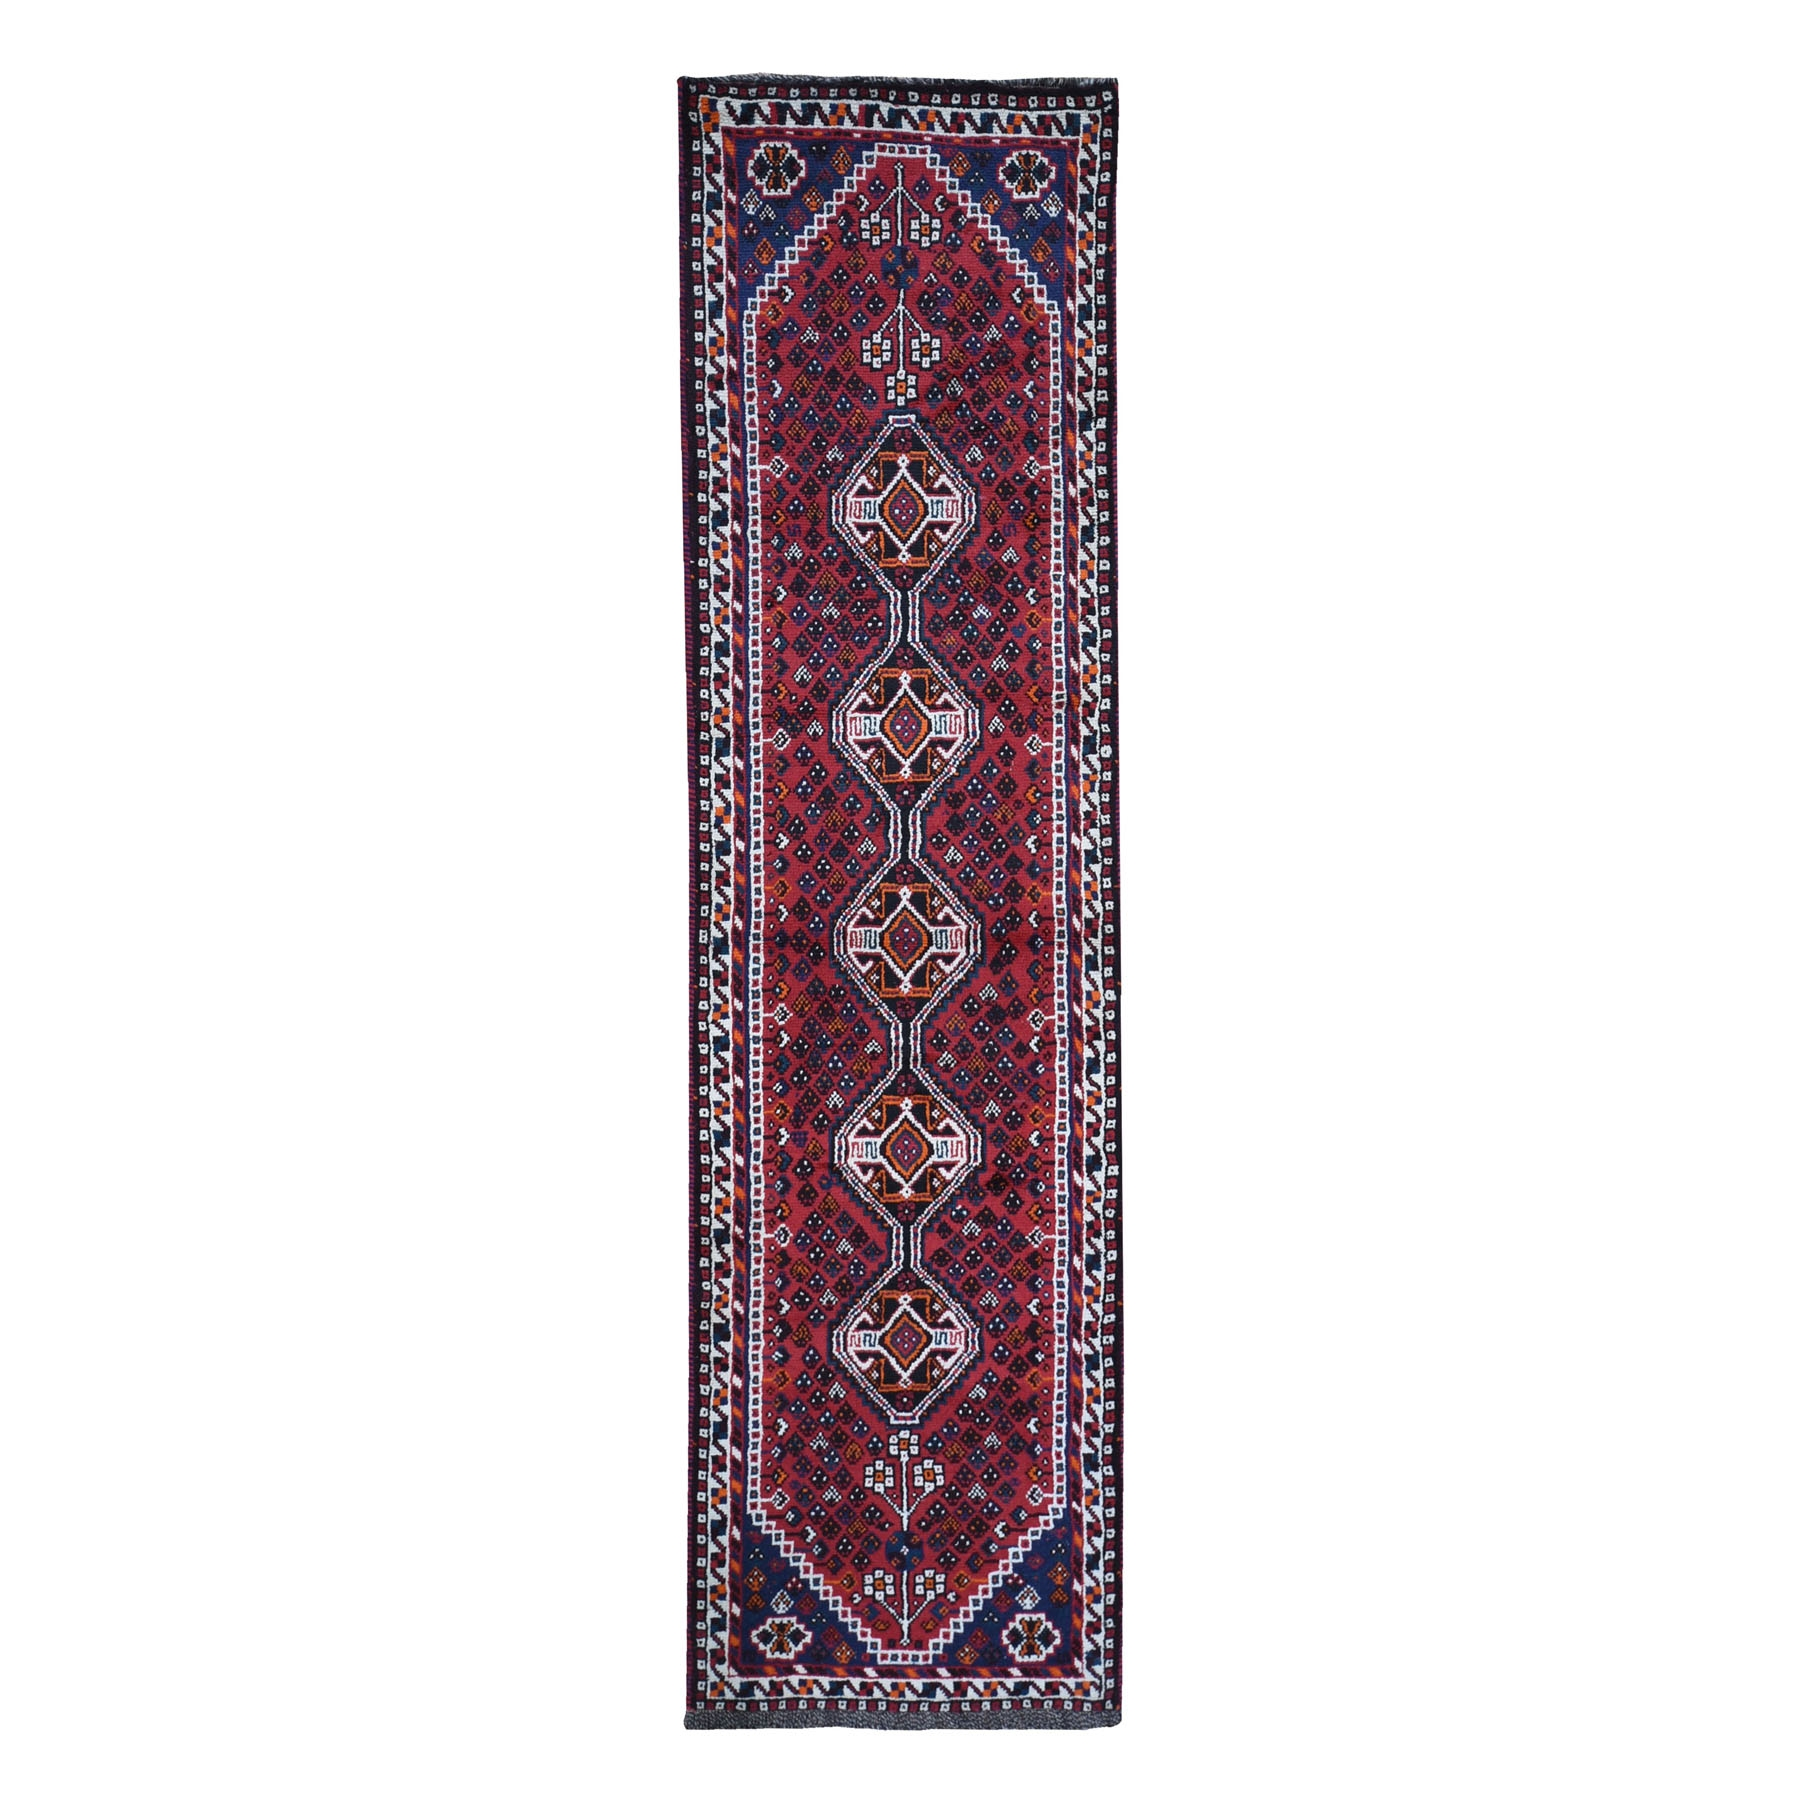 "2'6""x9'7"" New Persian Shiraz Runner Serrated Medallion Organic Wool Hand Knotted Oriental Rug"